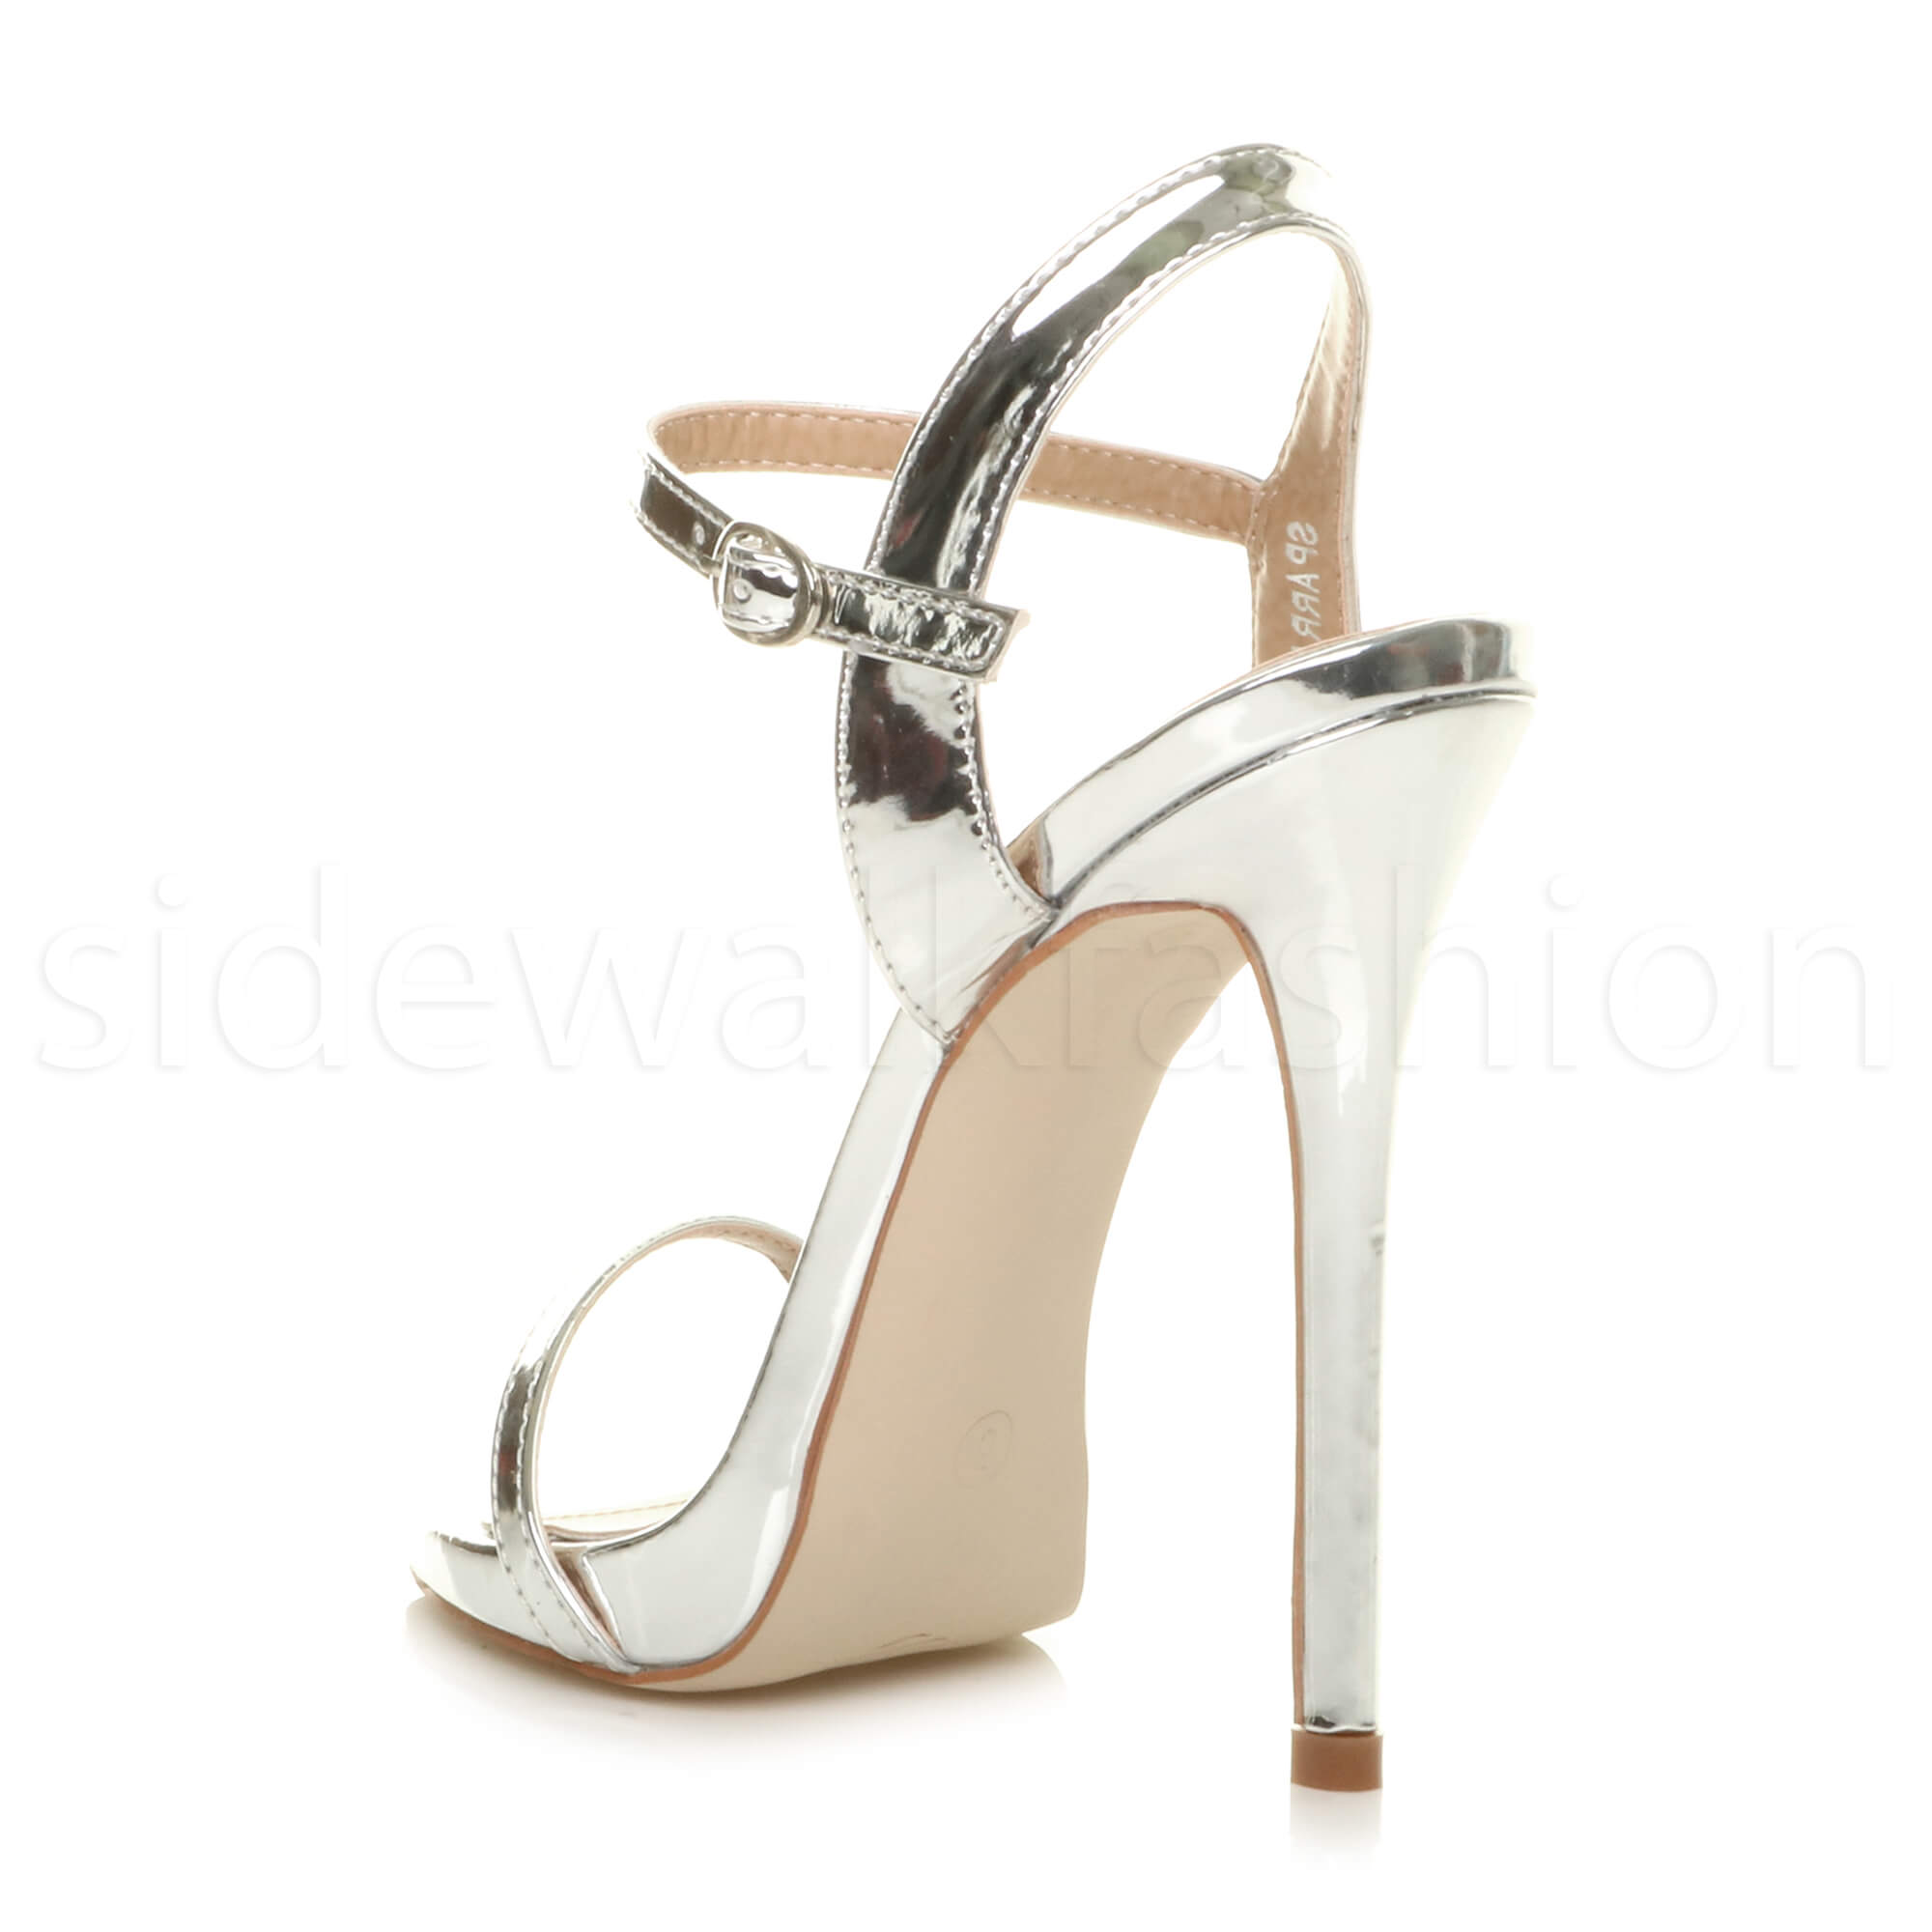 Womens ladies high heel party evening barely there platform sandals size